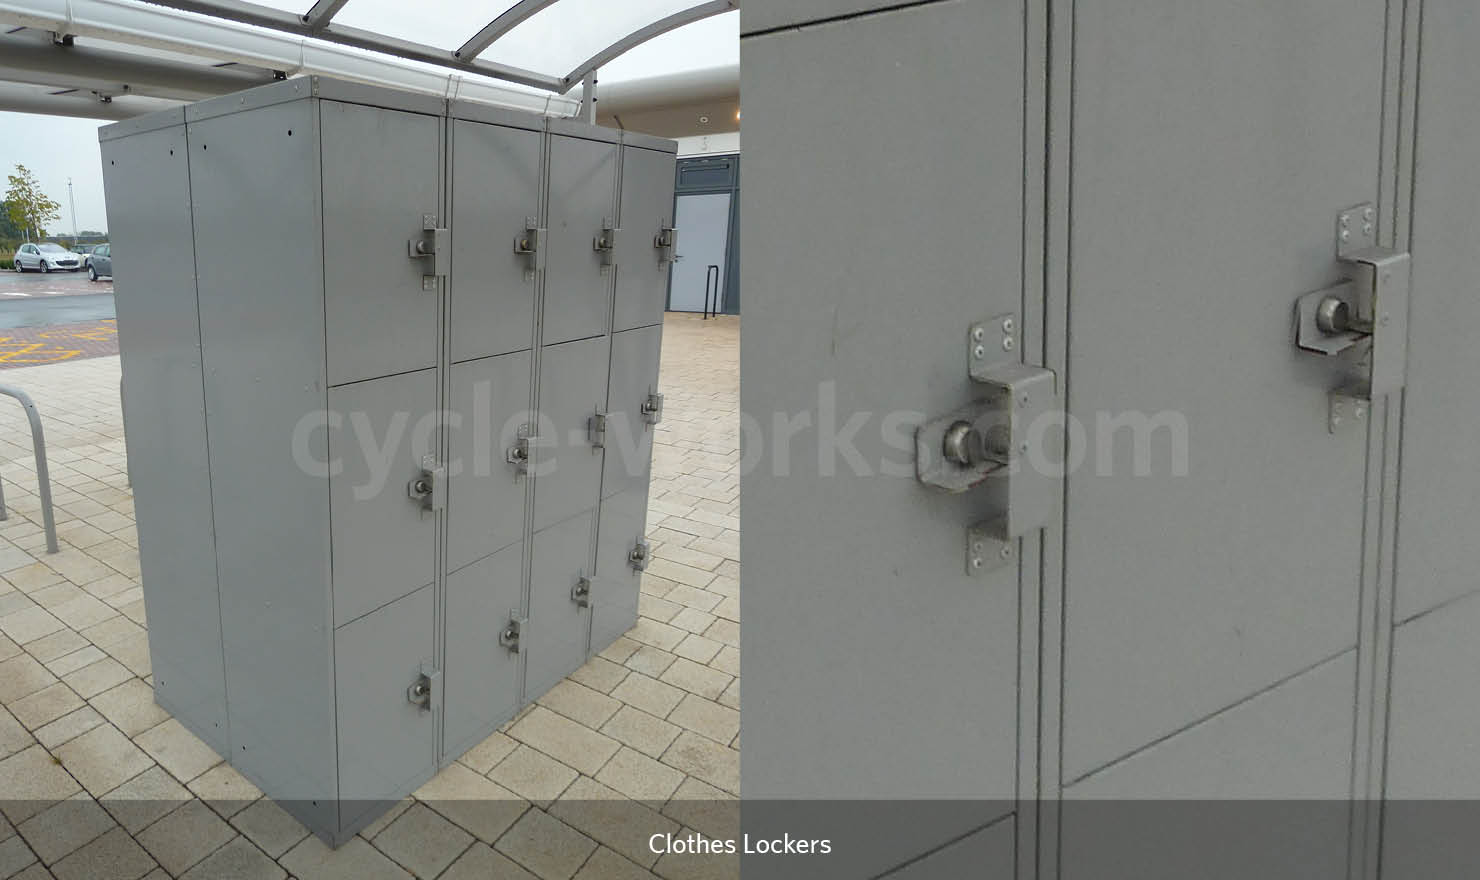 Stainless Steel Clothes Lockers